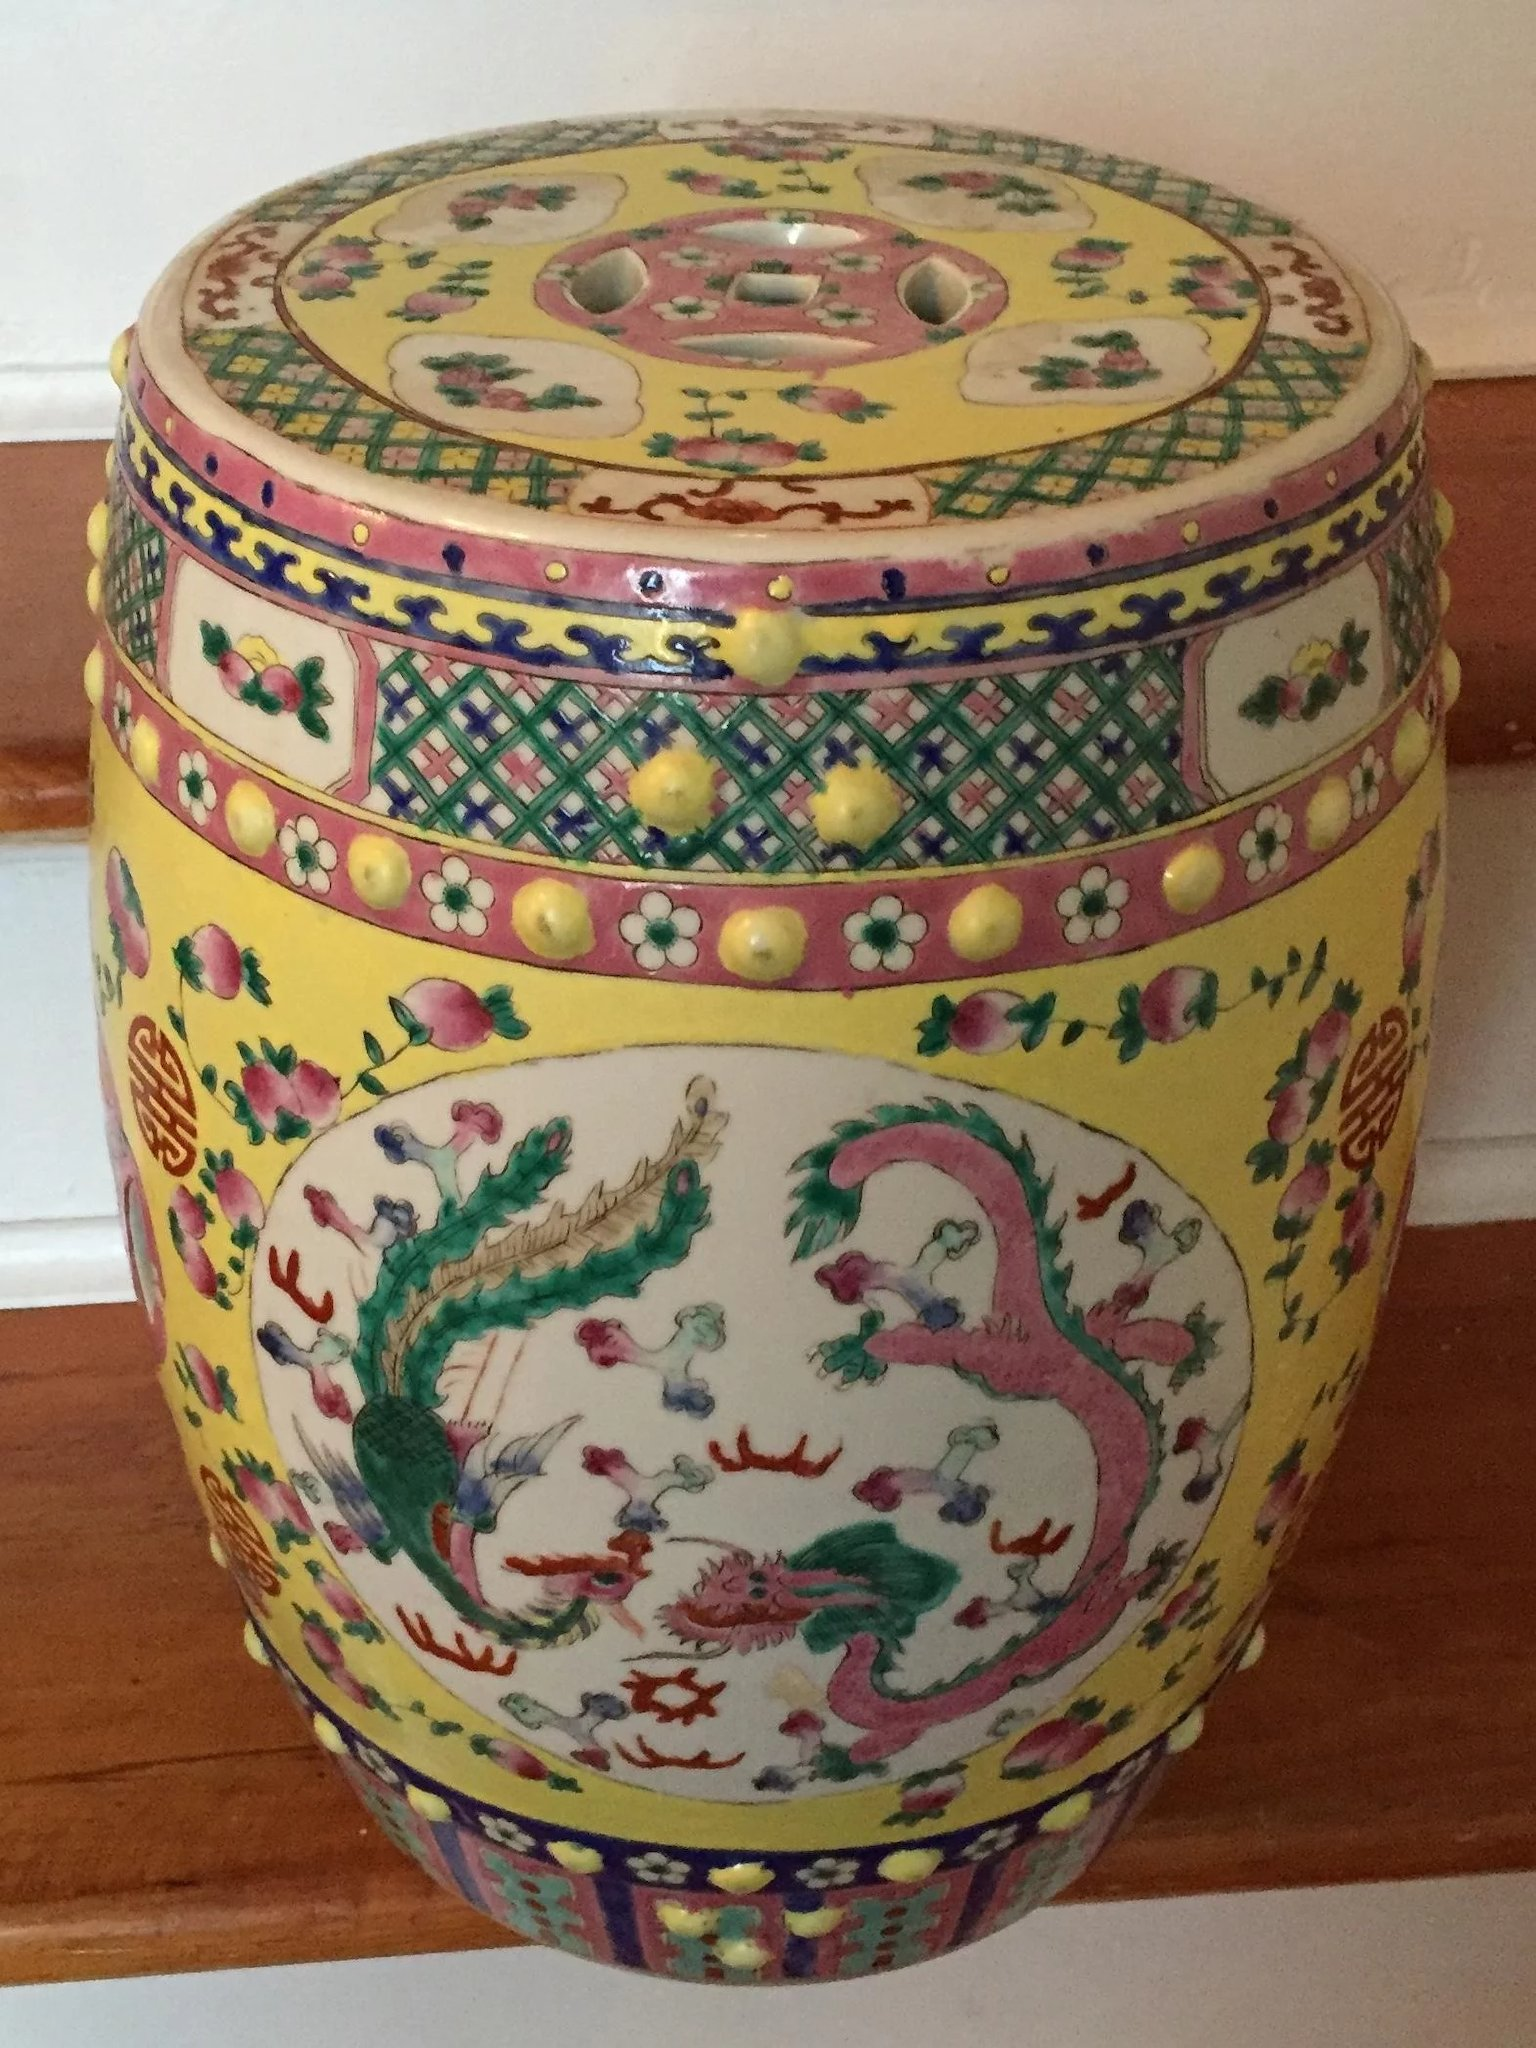 Antique 19th century Chinese Porcelain Garden Seat Decorated with ...